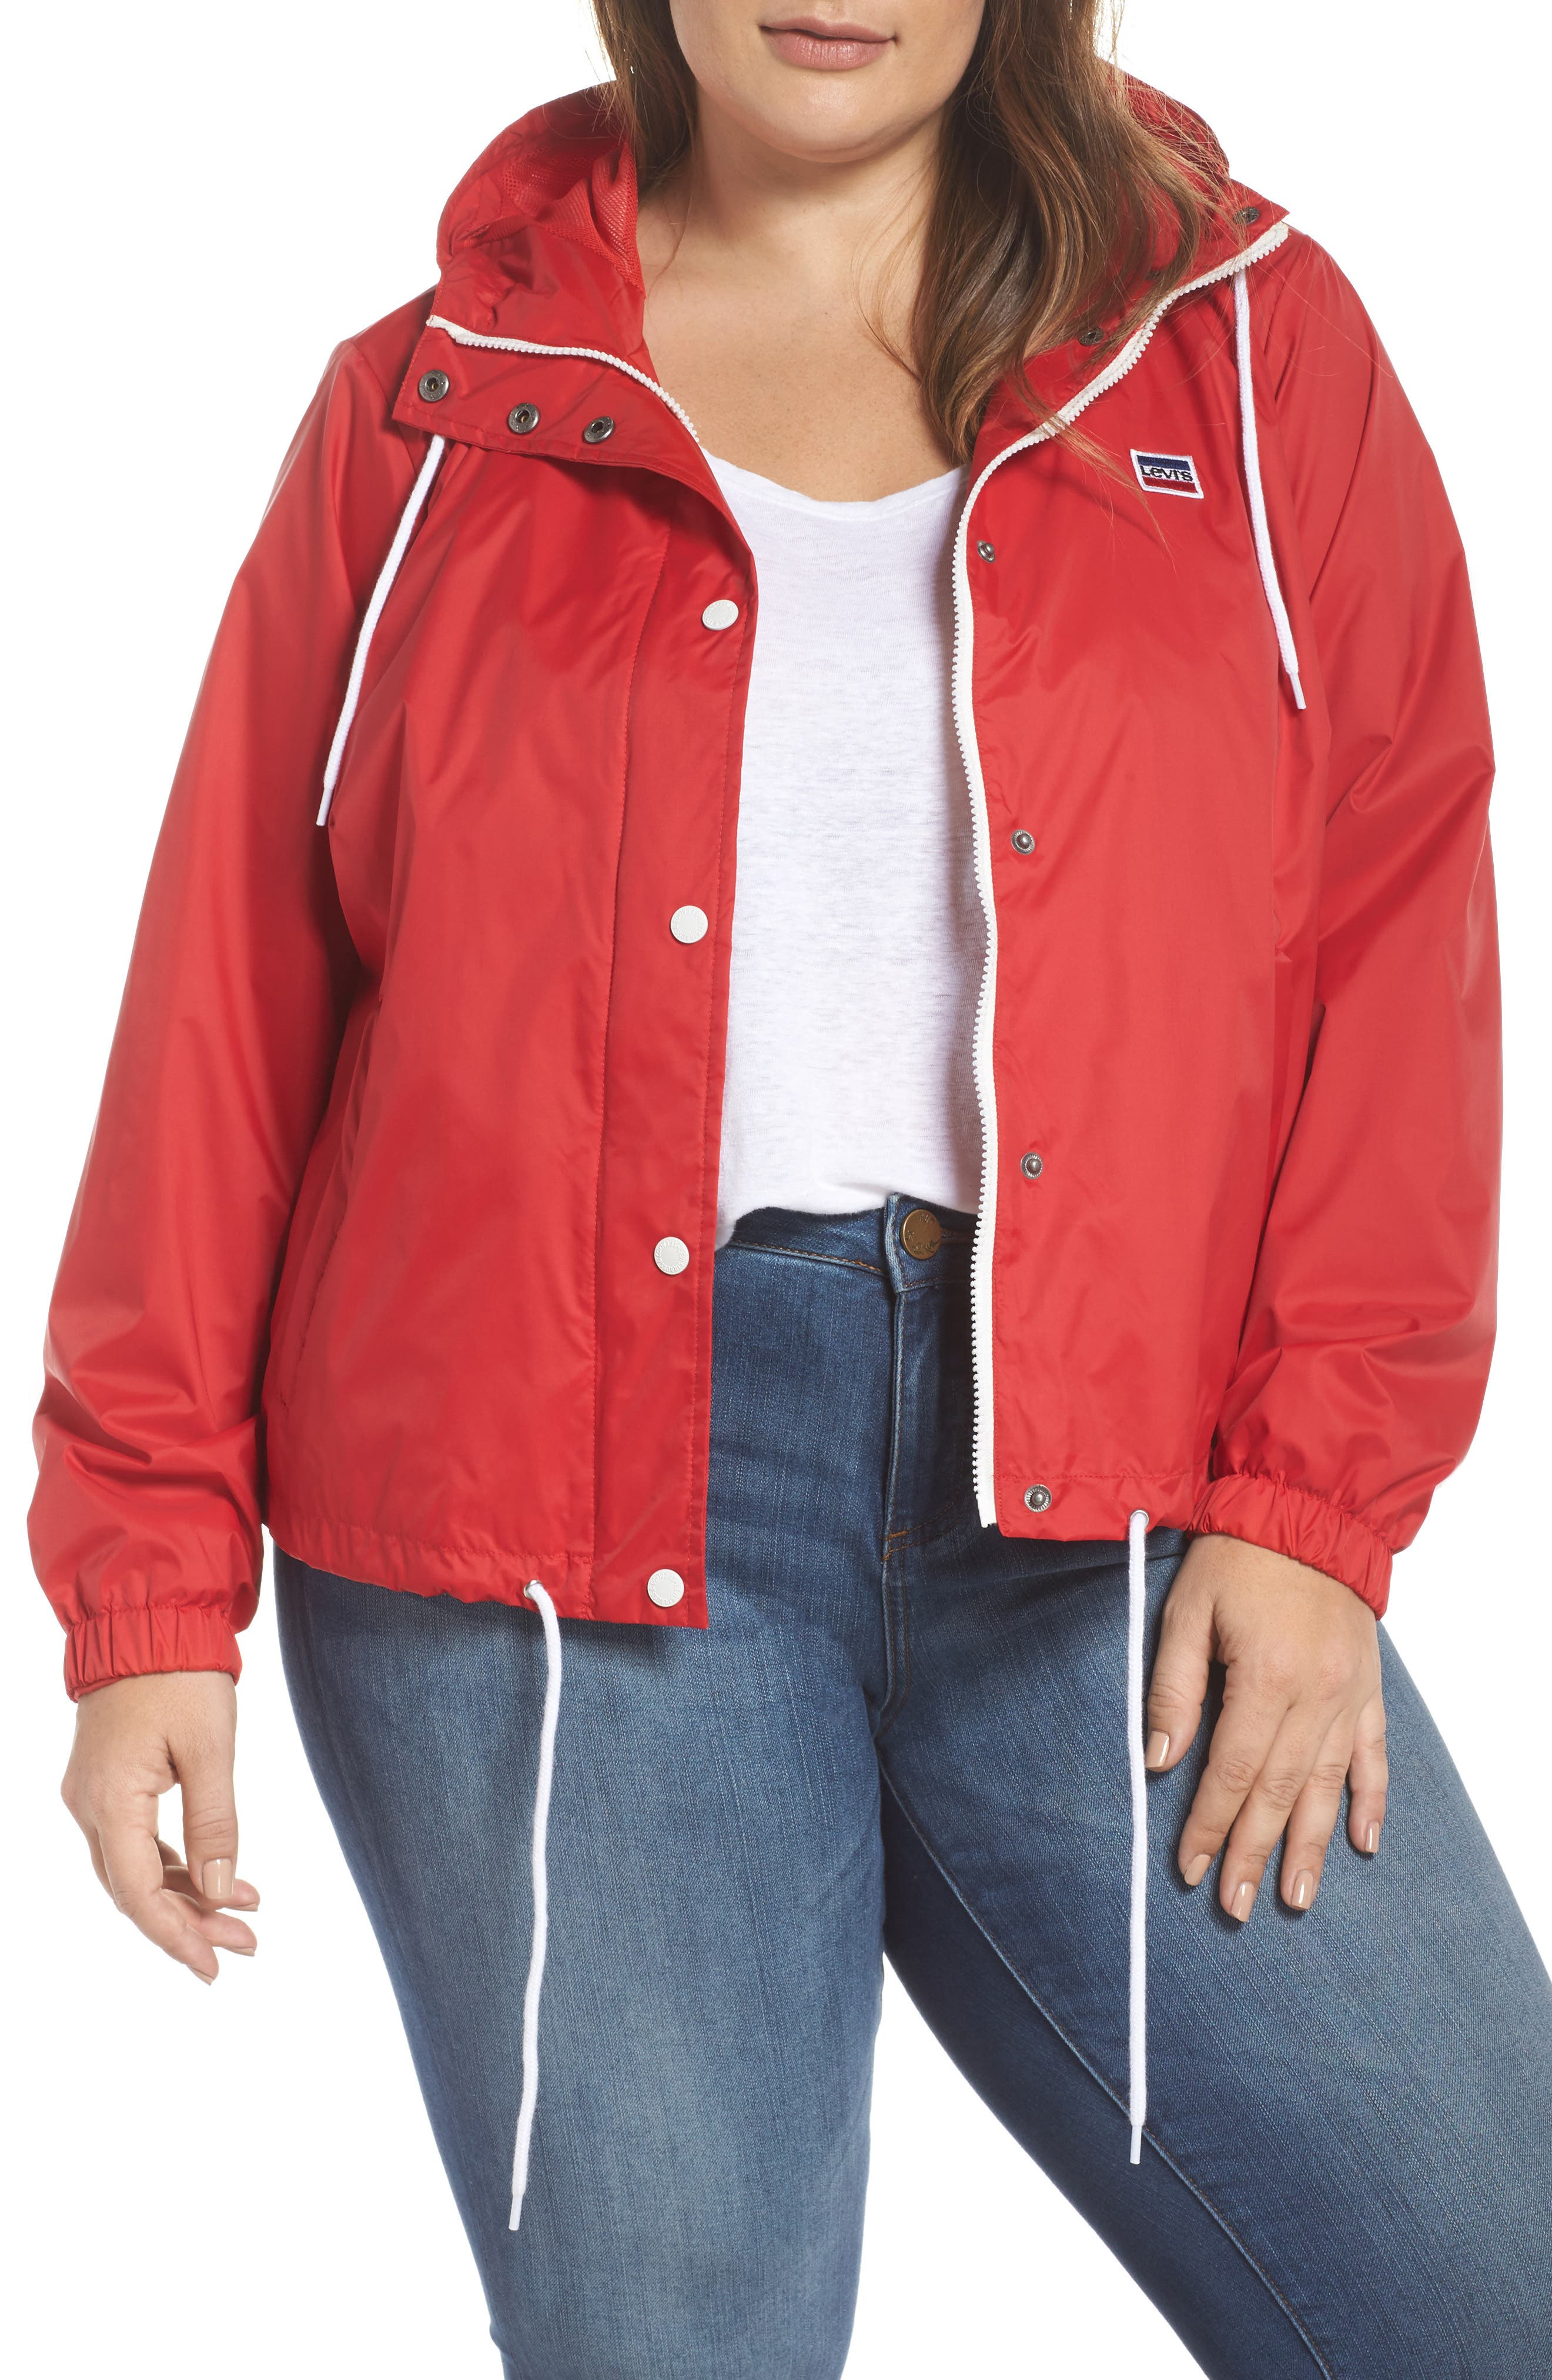 Retro Hooded Coach's Jacket,                             Main thumbnail 1, color,                             Red